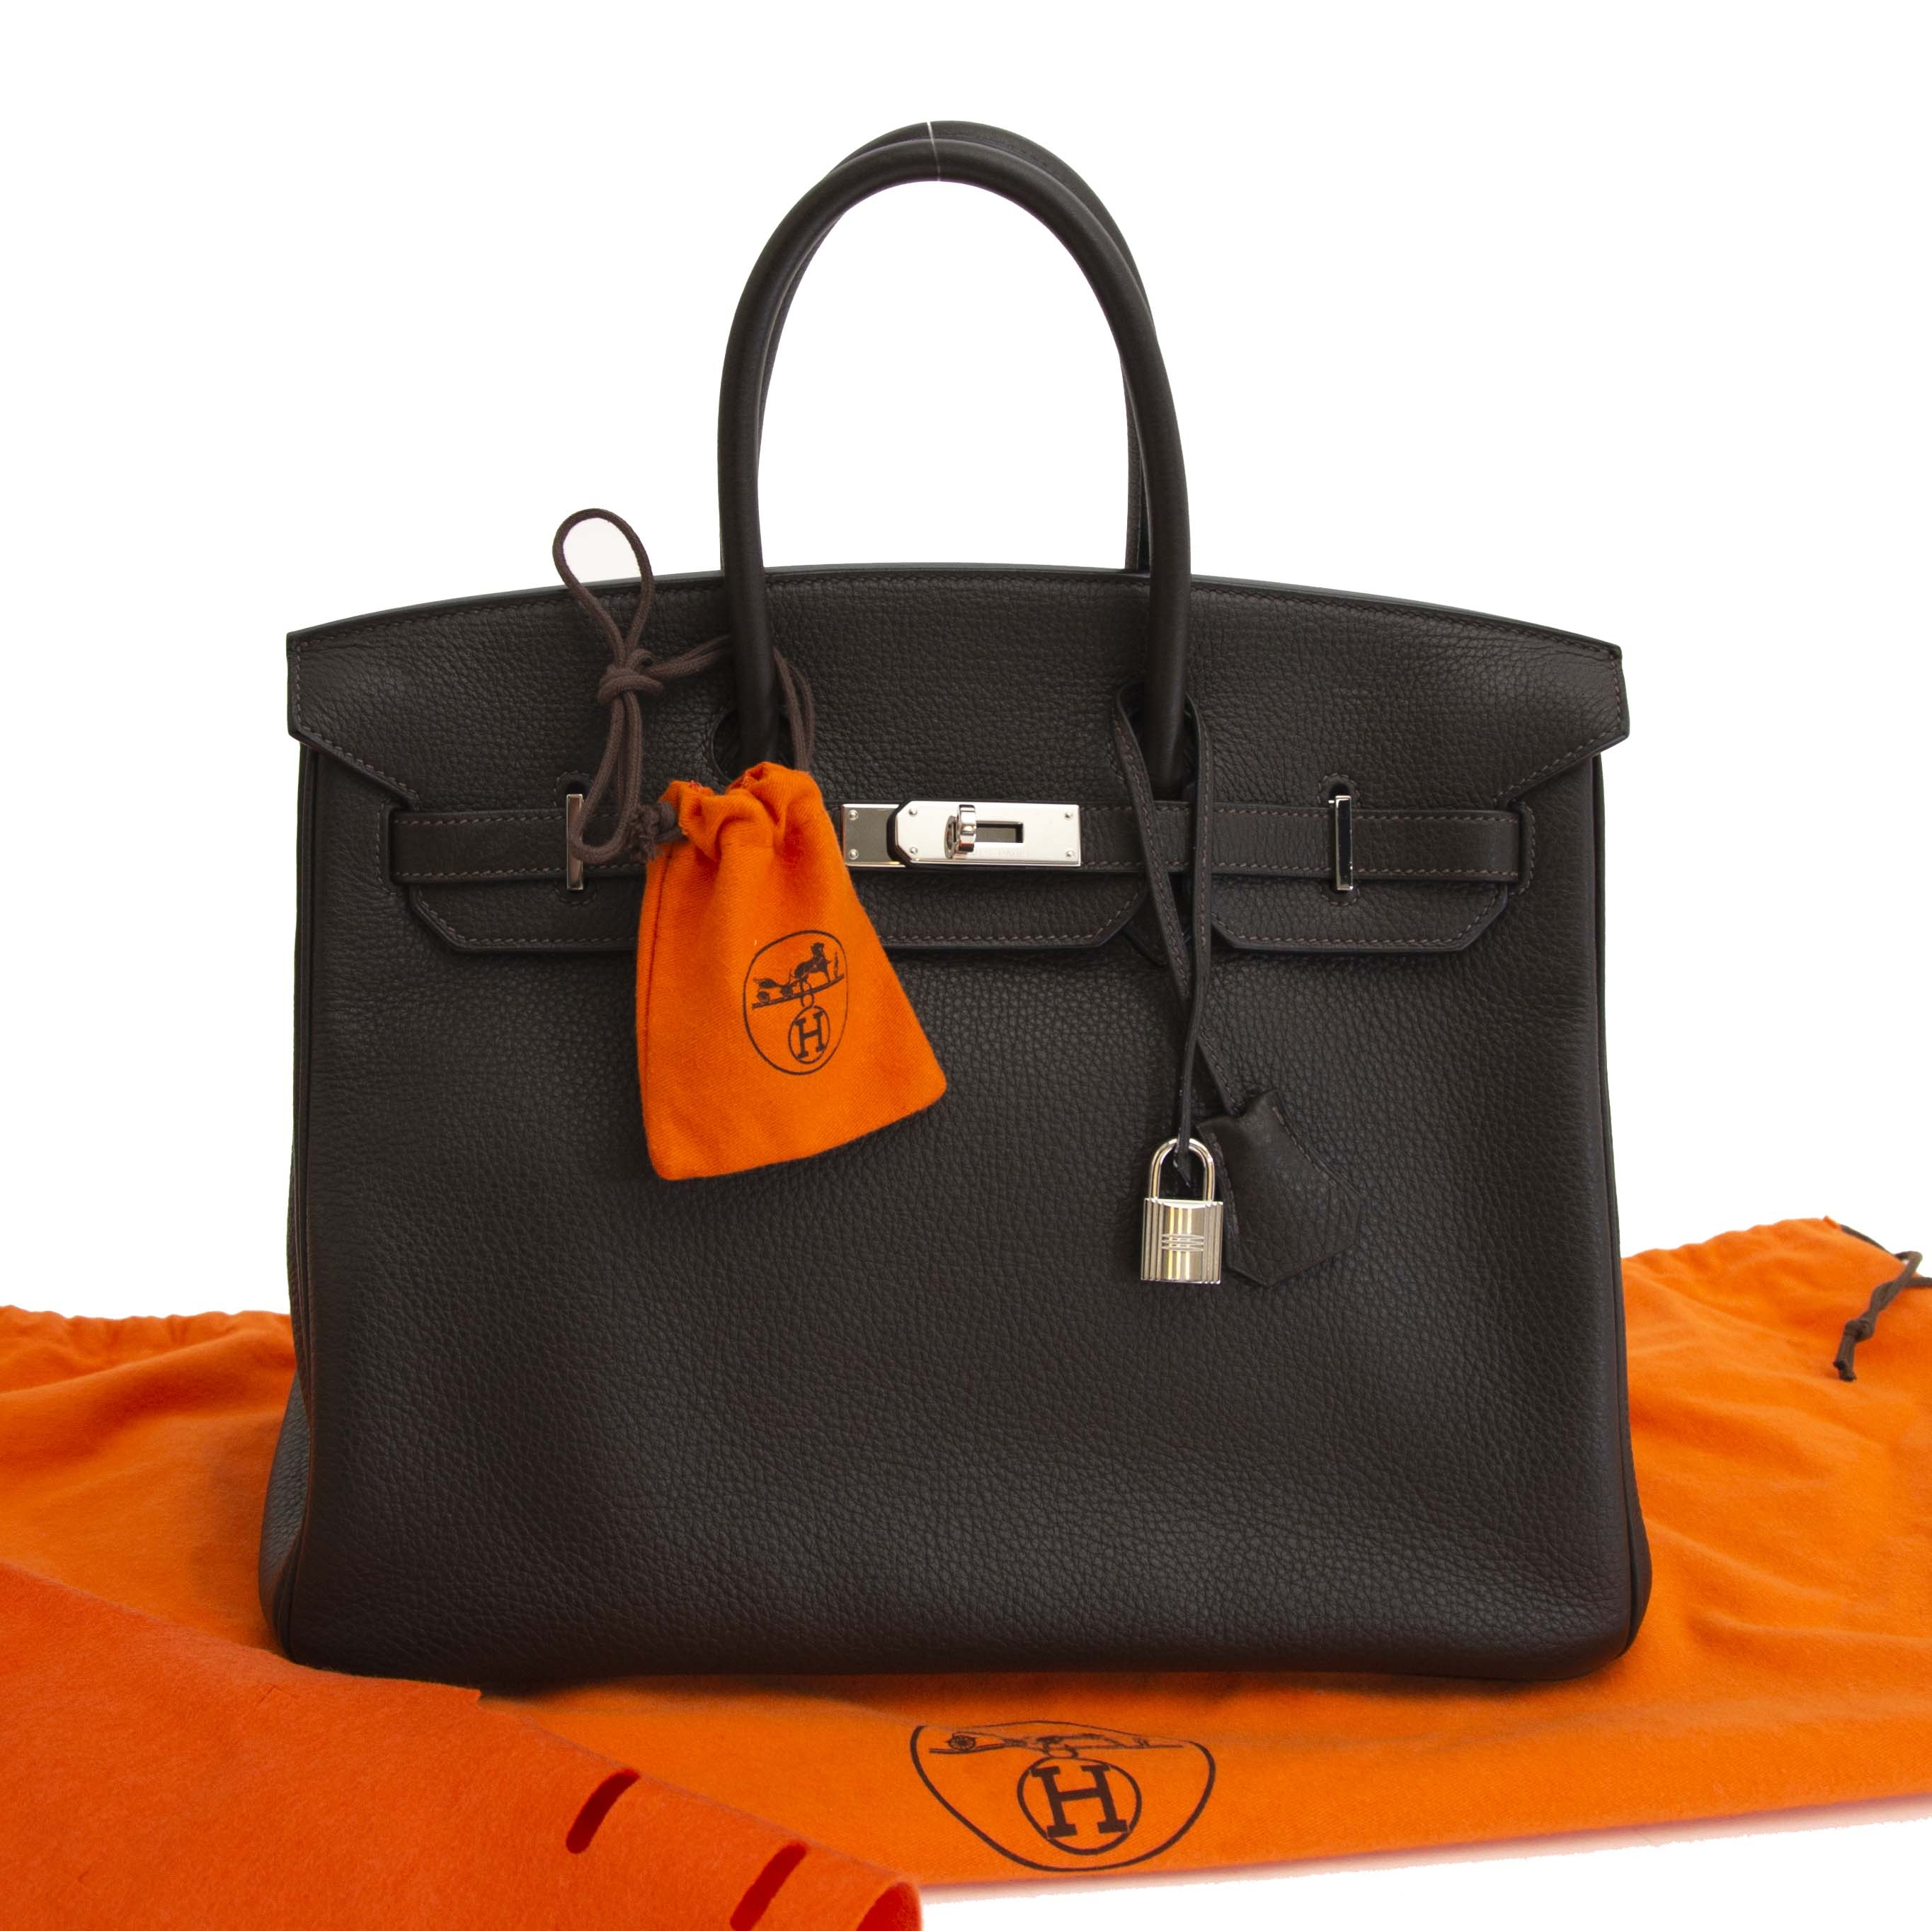 a89e90563d ... the place to be for wall your designer handbags and accessories. Hermes